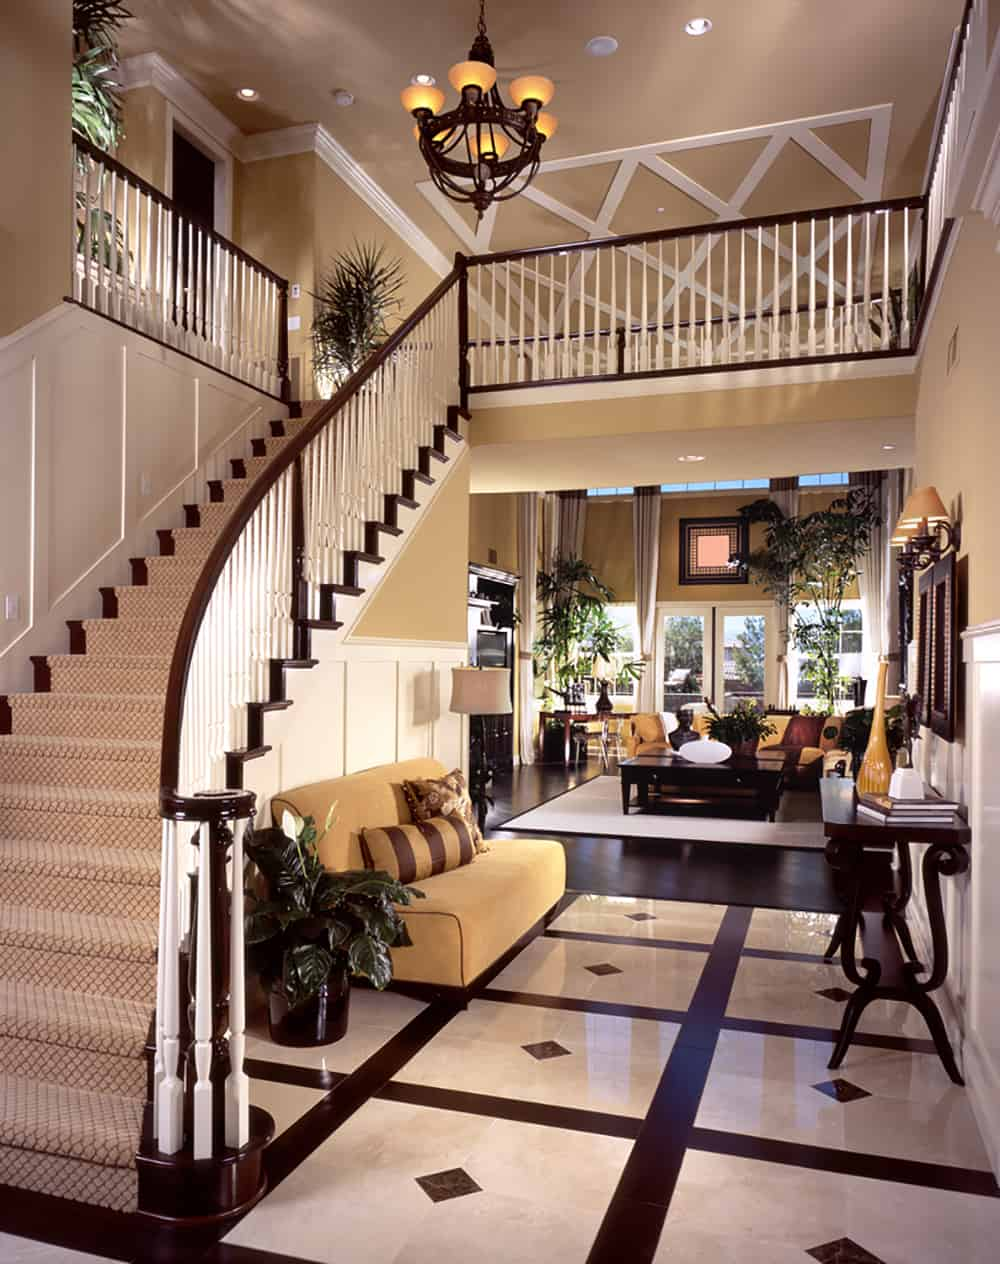 Foyer Interior Design : Top best foyer designs